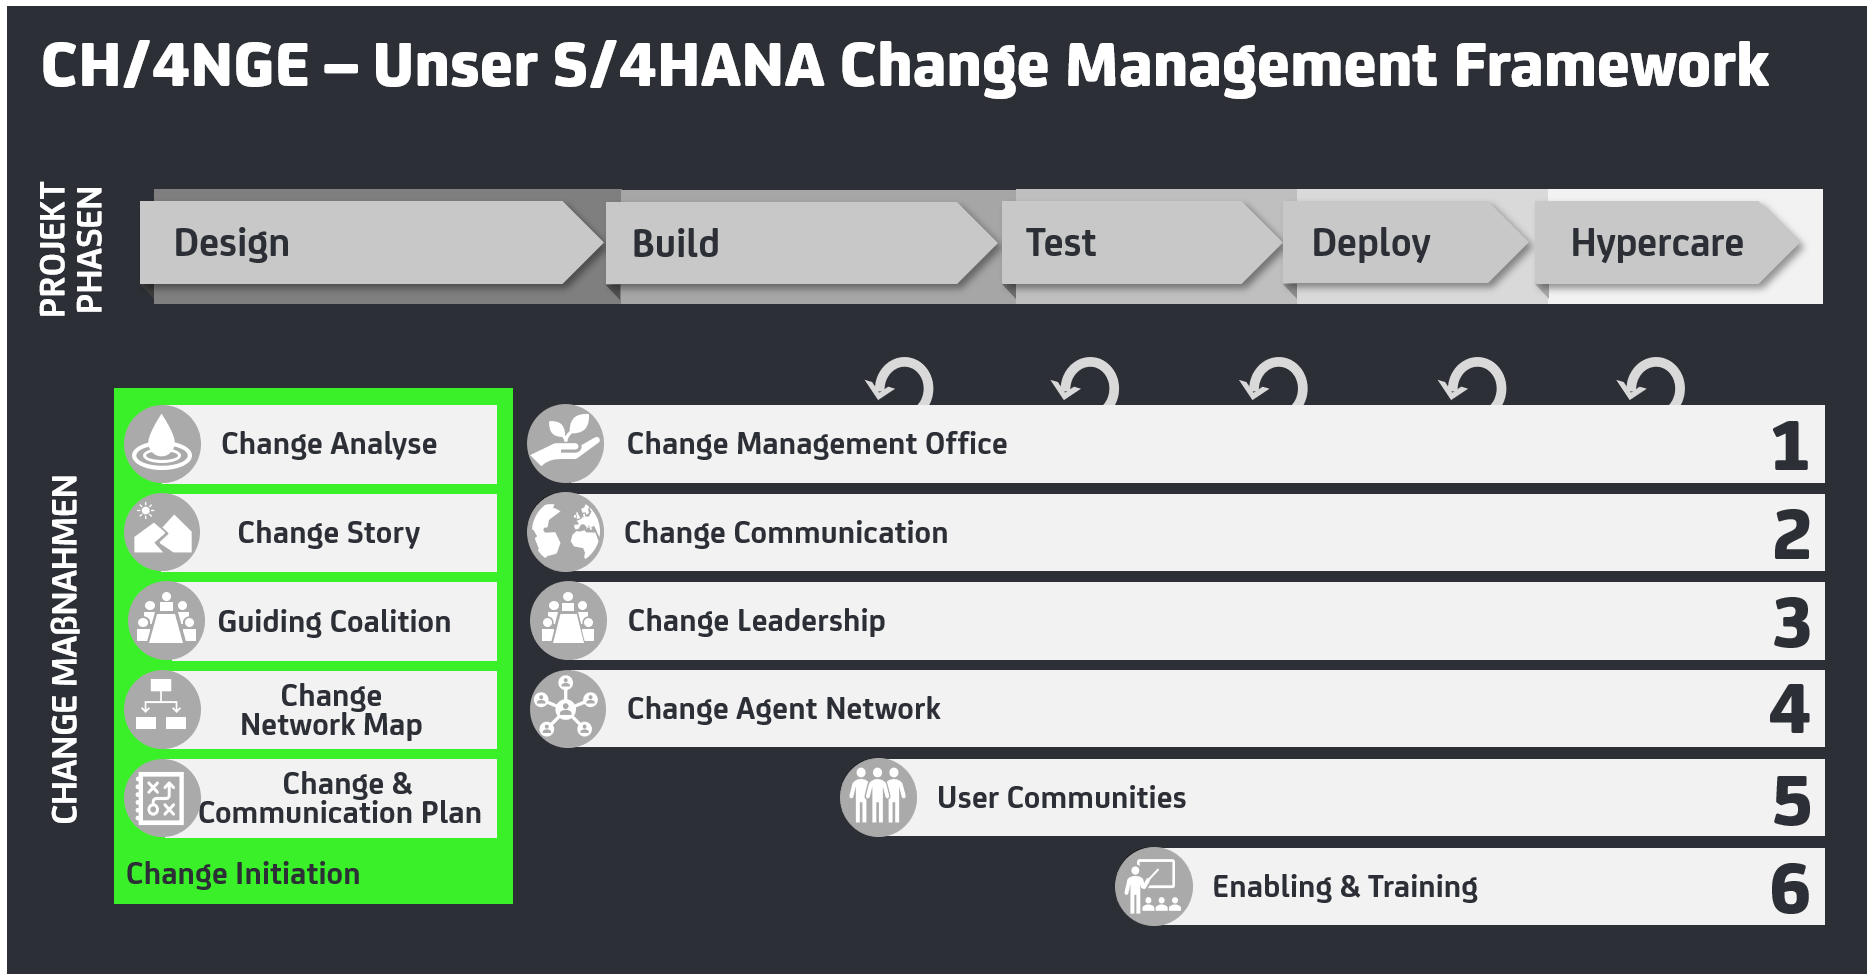 https://cpc-ag.de/wp-content/uploads/2018/07/s4hana-change-management-framework-1867x975.png